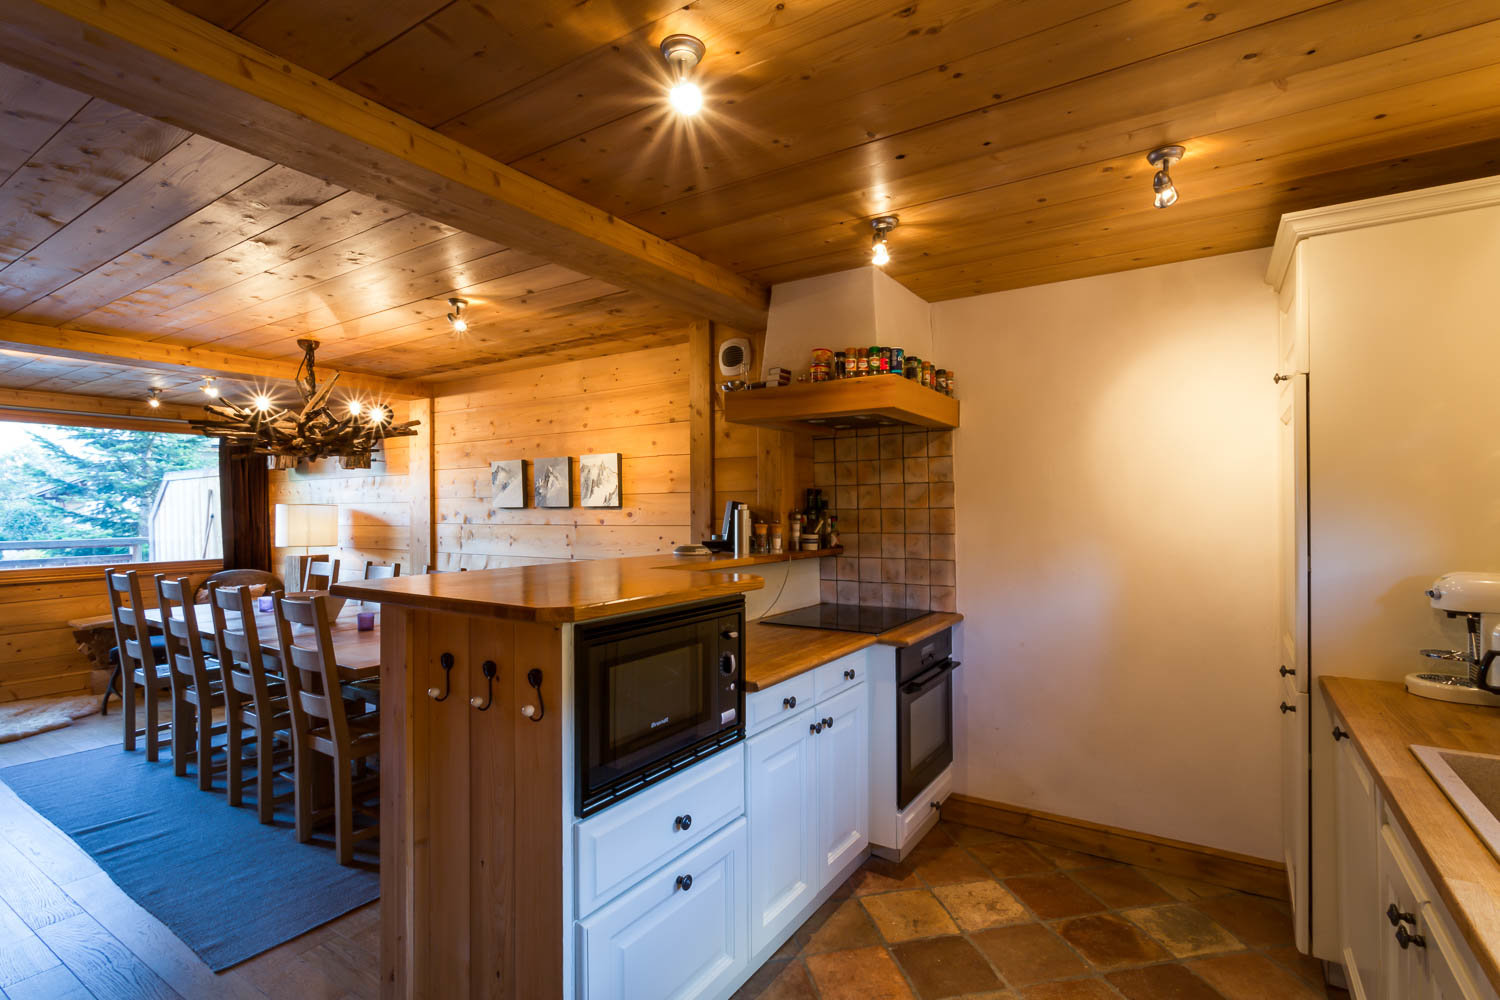 Semi-detached chalet on the pistes - Fantastic views